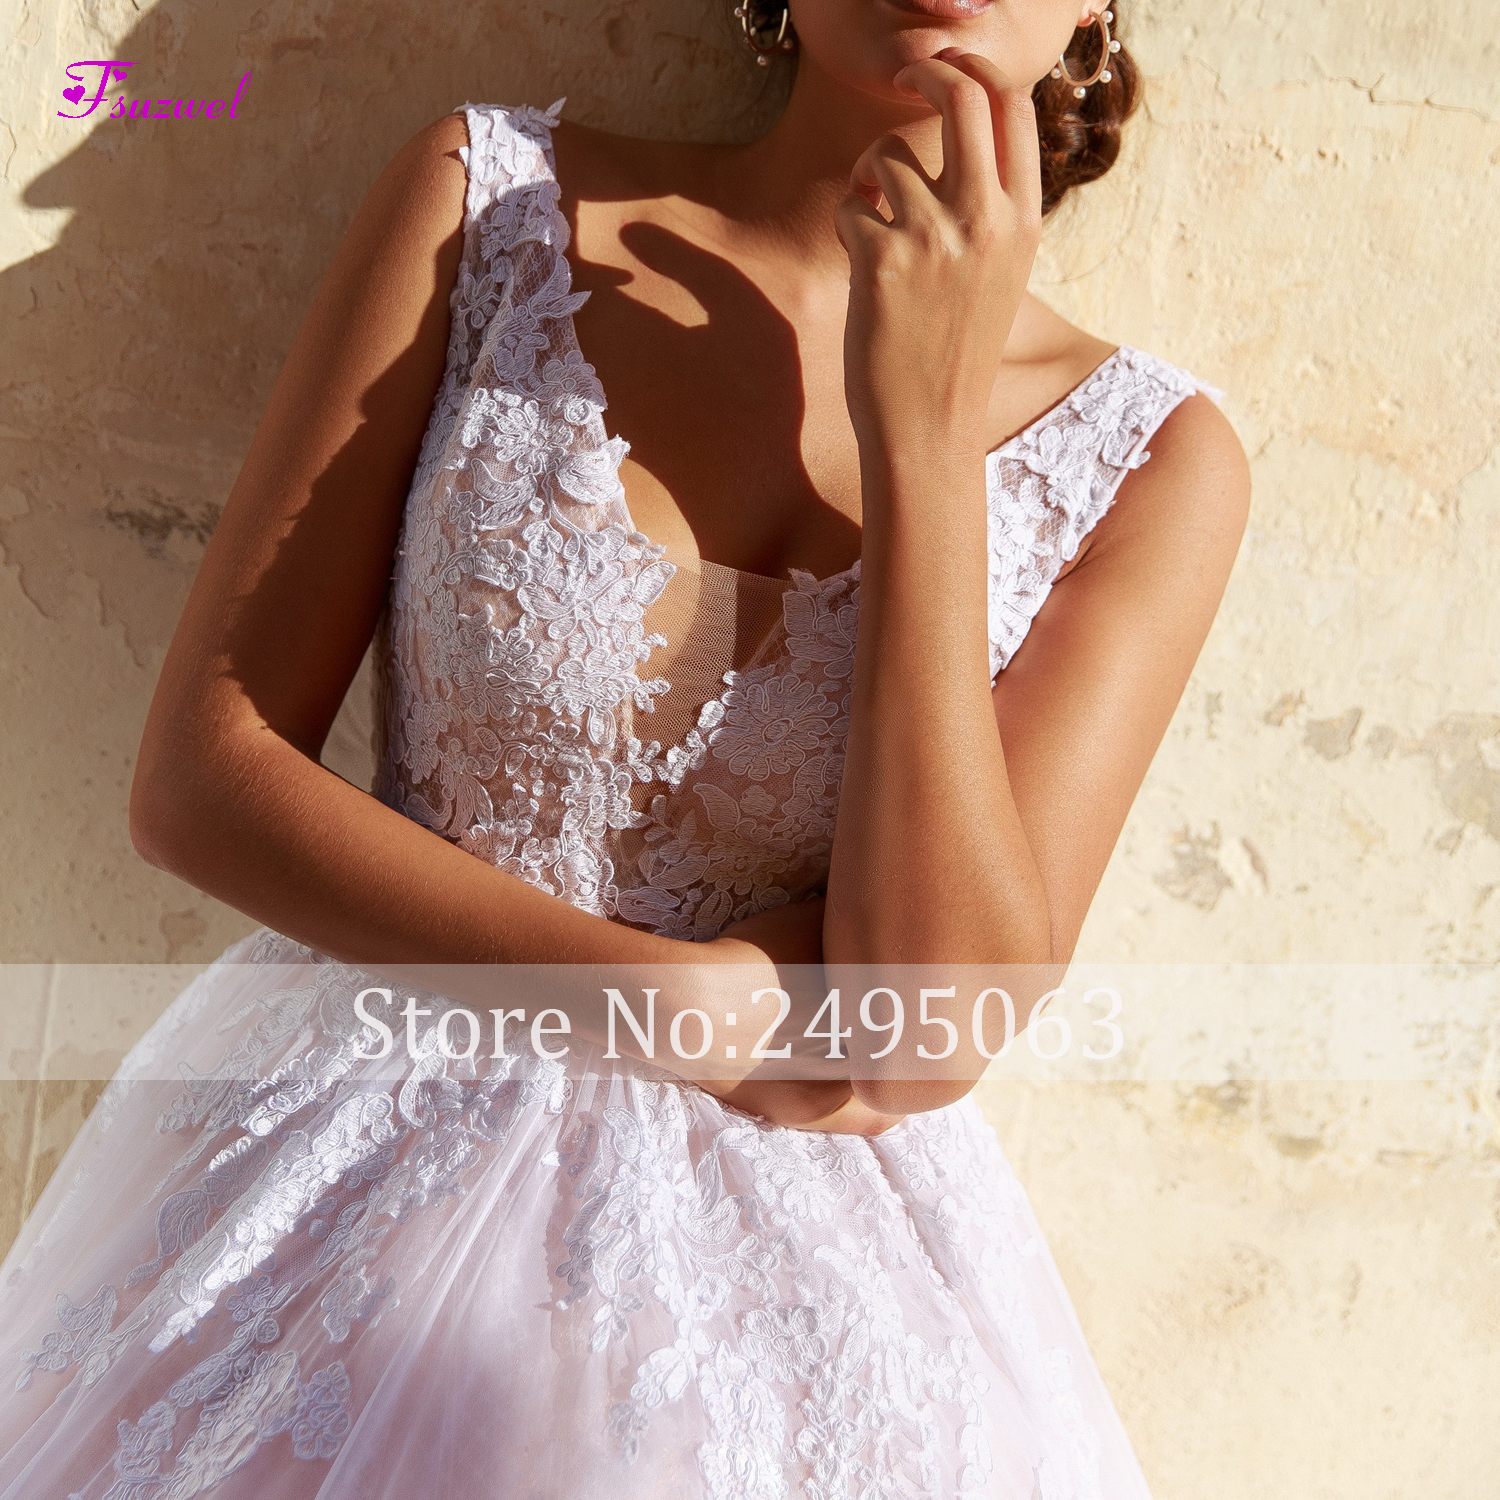 Image 3 - Fsuzwel New Arrival Sexy V Neck Backless A Line Wedding Dresses 2019 Gorgeous Appliques Sweep Train Bridal Gown Vestido de Noiva-in Wedding Dresses from Weddings & Events